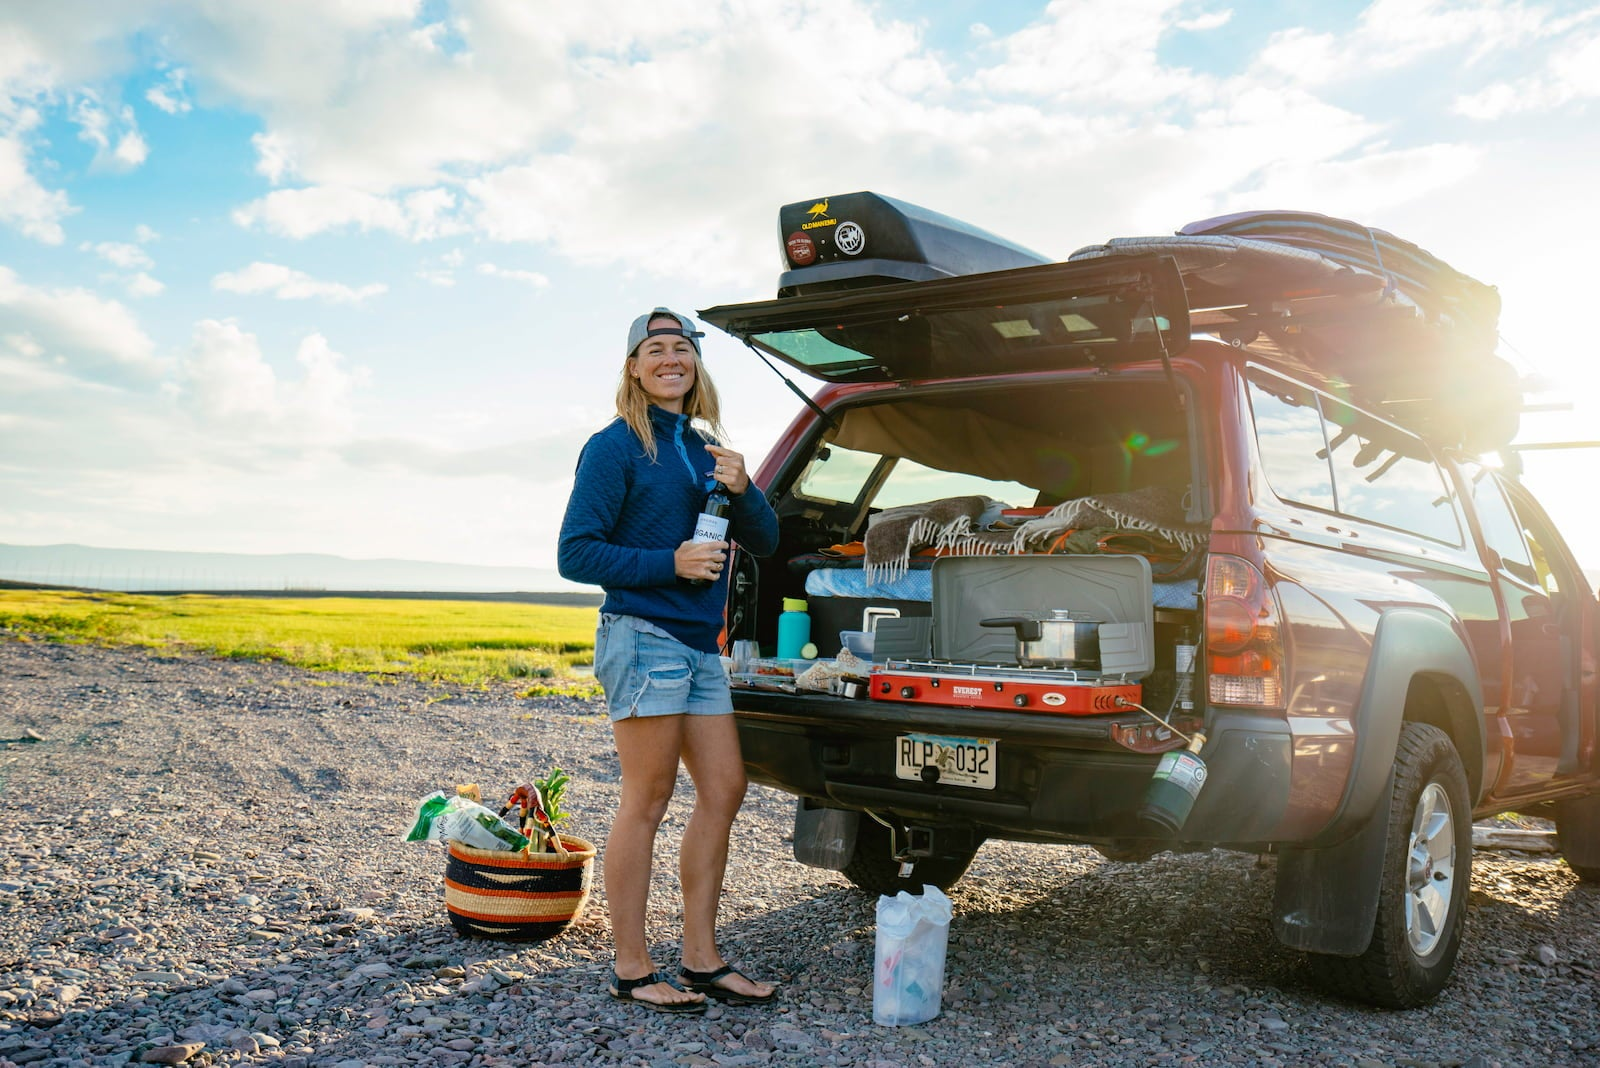 Mak of Bound for nowhere outside of their built out toyota tacoma camper.